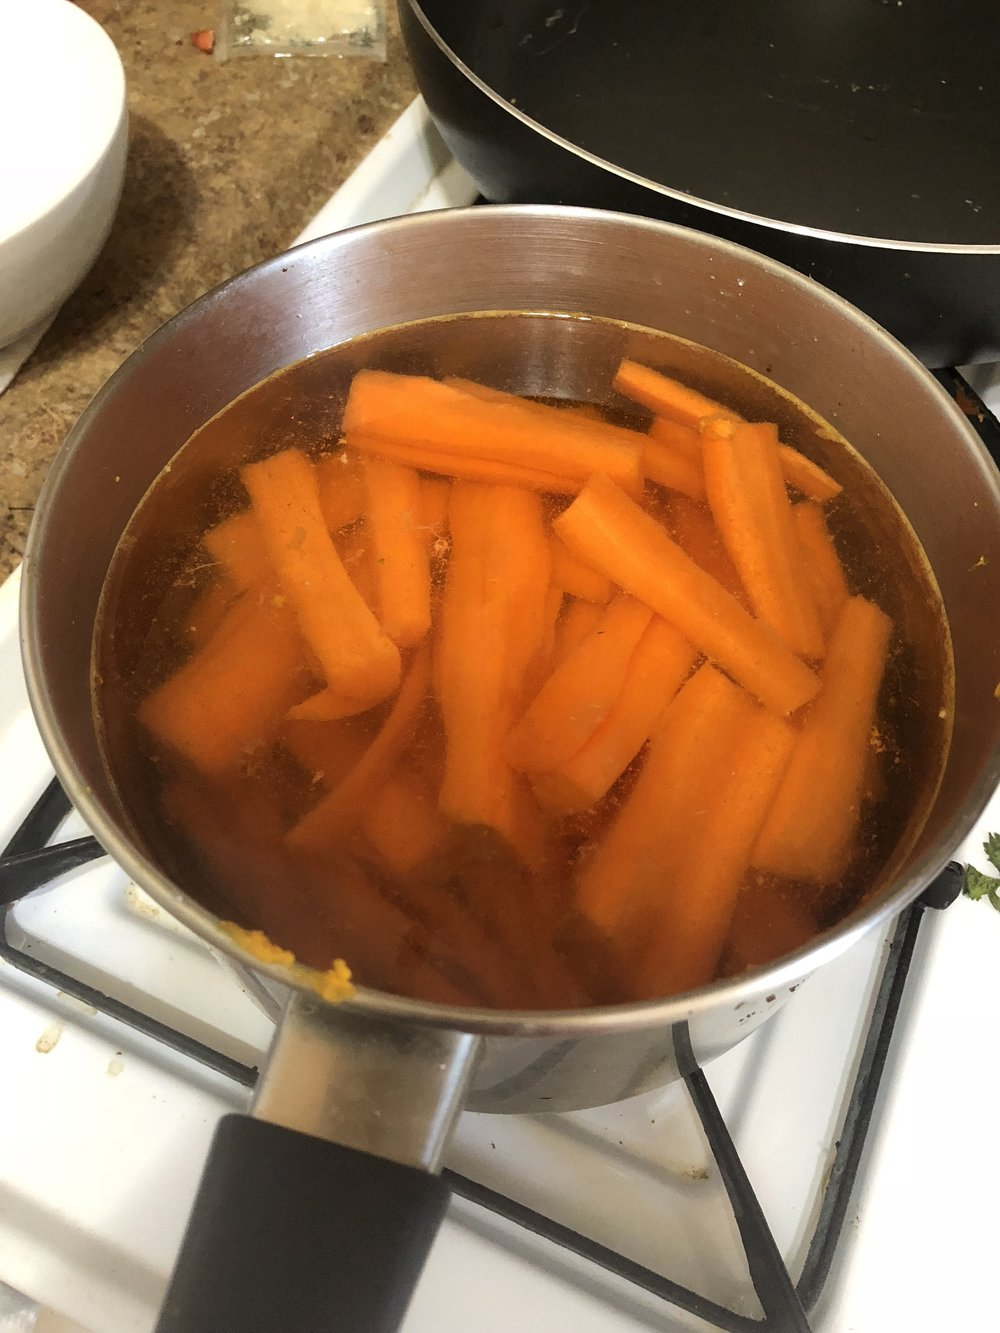 Bring carrots a boil, watching carefully so as not to overcook